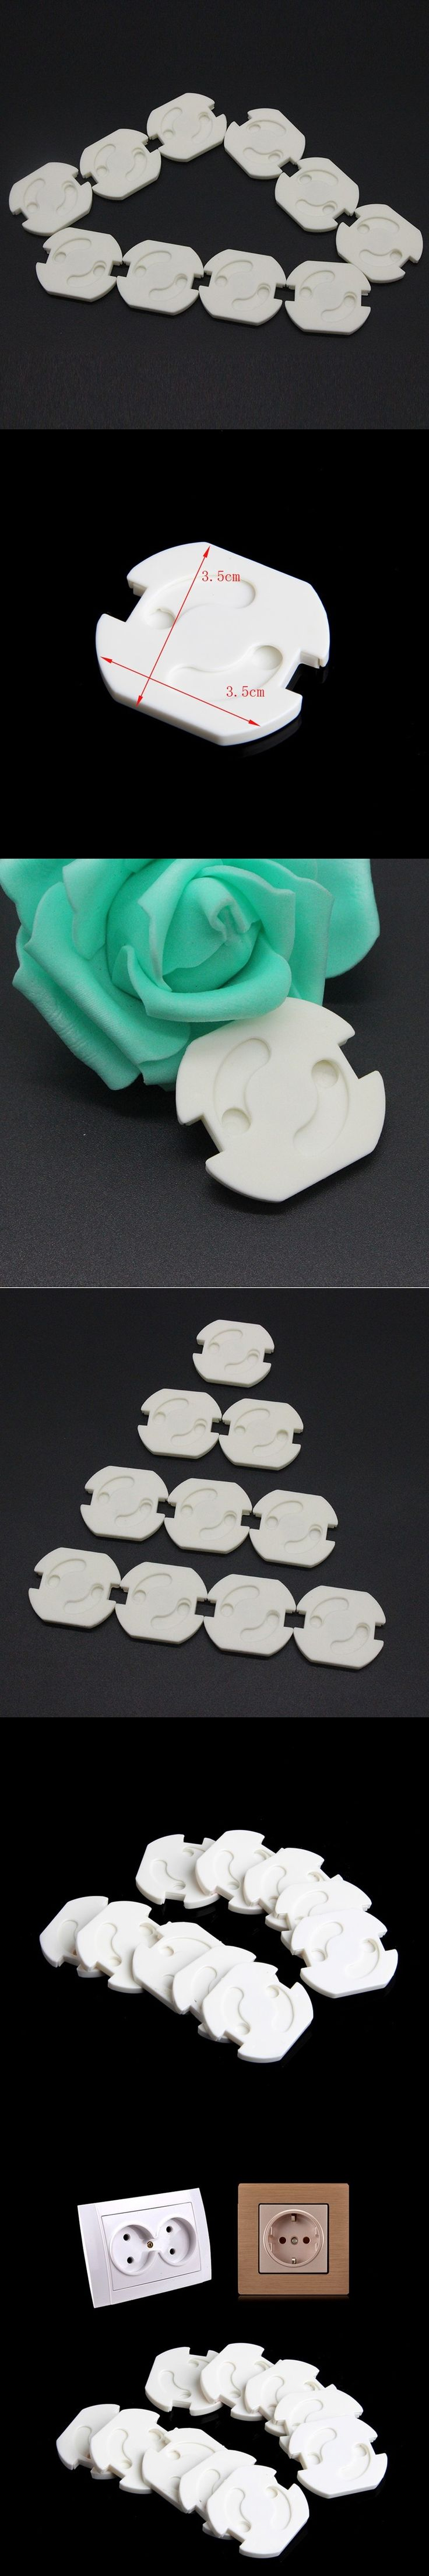 Safety EU Stand Power Socket Cover Electrical Outlet Baby Child Safety Guard Electric Shock Proof Plugs Protector Rotate Cover